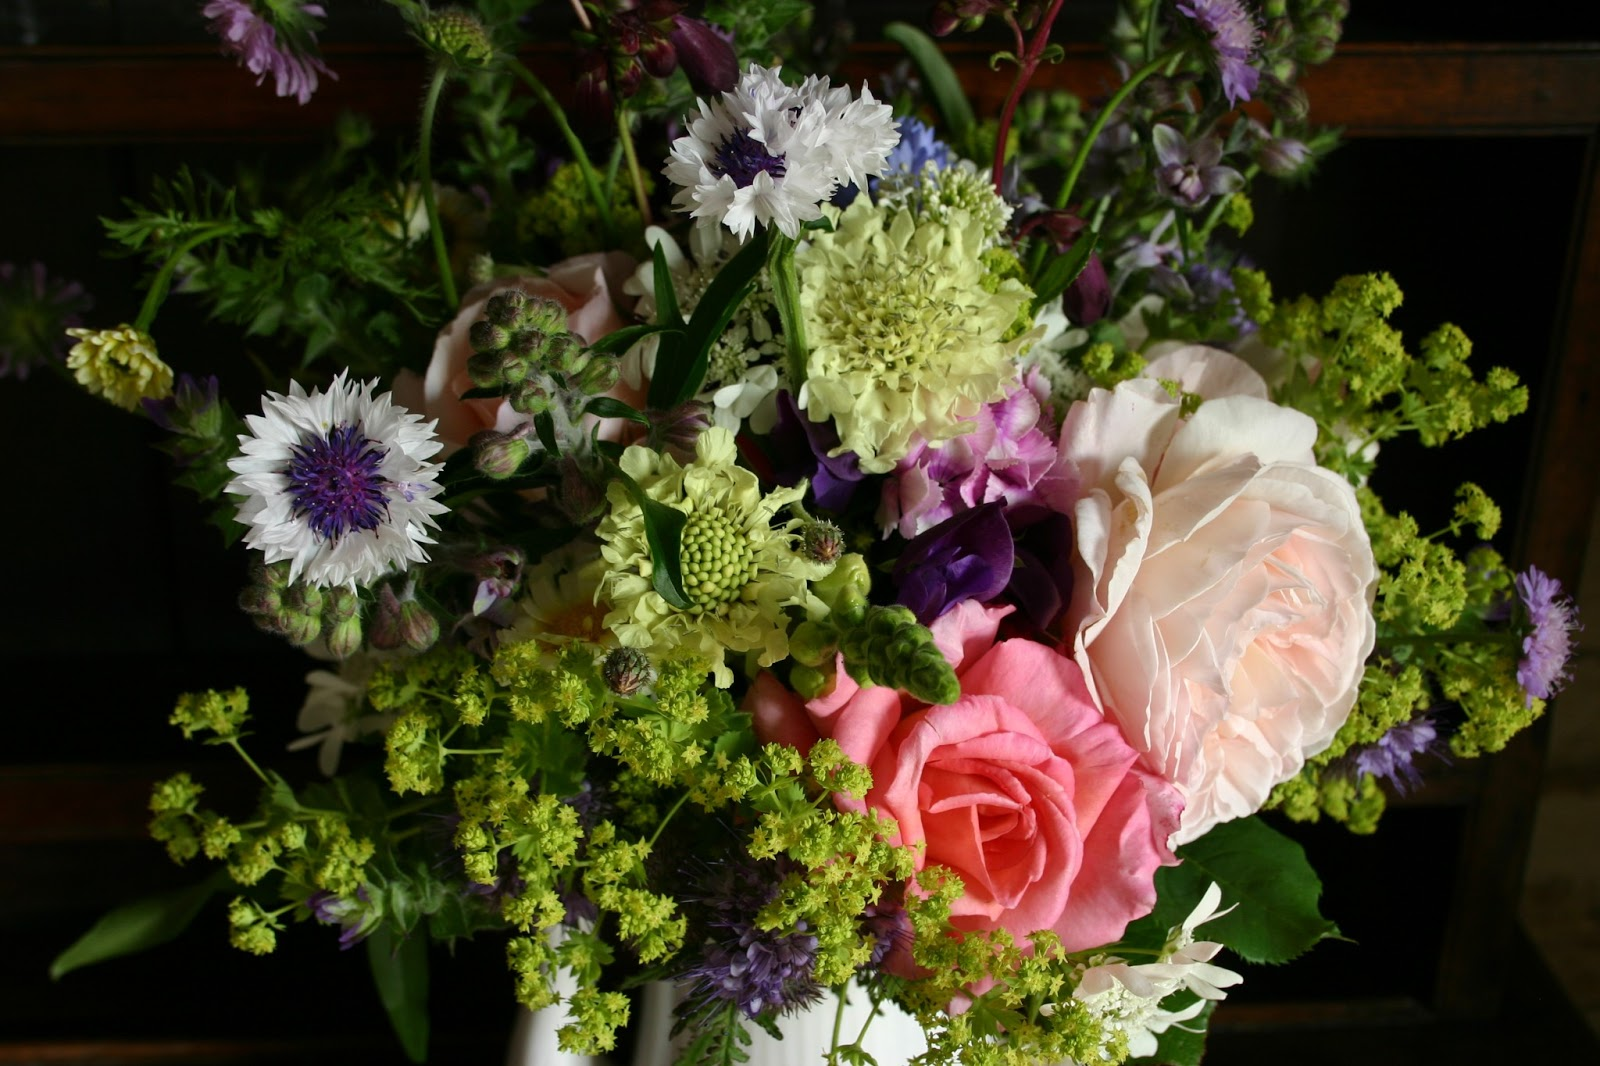 Foxgloves other british natives as cut flowers common farm catmint alchemilla annual chrysanths sweet peas snapdragons all in a mahoosive bouquet of english country flowers by common farm flowers dhlflorist Images